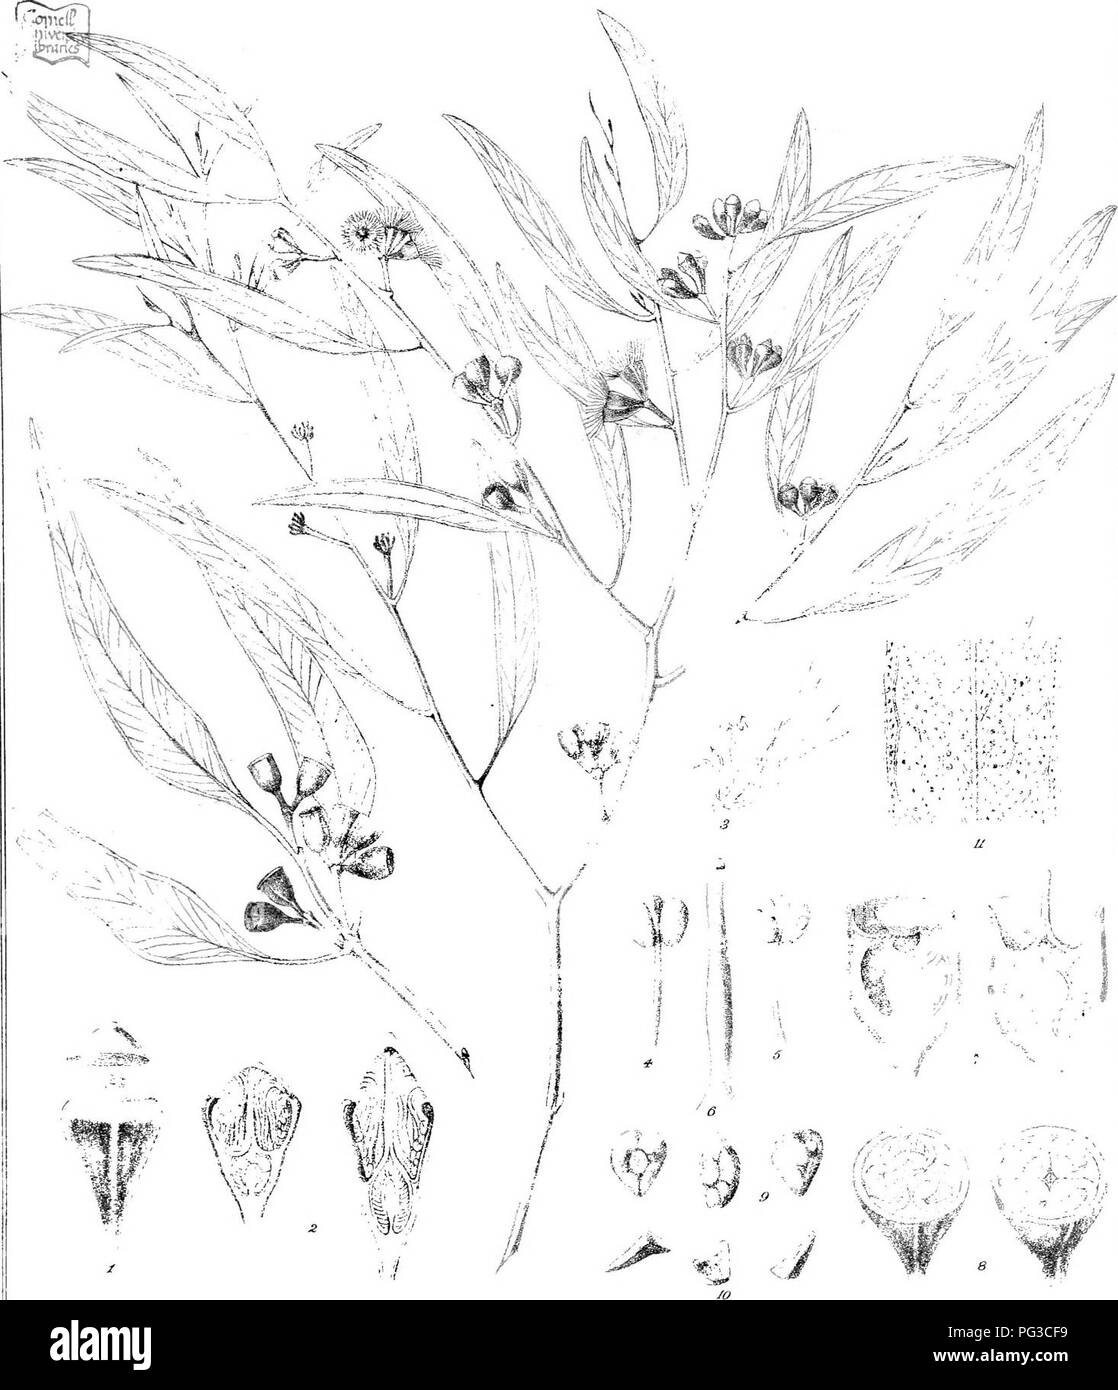 """. Eucalyptographia. A descriptive atlas of the eucalypts of Australia and the adjoining islands;. Eucalyptus; Botany. Todtde! CT-vA!&r>l!;h 7'.'v. iirerj"""":. !i®iilf]pili^ frtsllai fd/ â I.-'r'il.F, Office """"-:1b. Please note that these images are extracted from scanned page images that may have been digitally enhanced for readability - coloration and appearance of these illustrations may not perfectly resemble the original work.. Mueller, Ferdinand von, 1825-1896. Melbourne, J. Ferres, Govt. Print; [etc. ,etc. ] - Stock Image"""